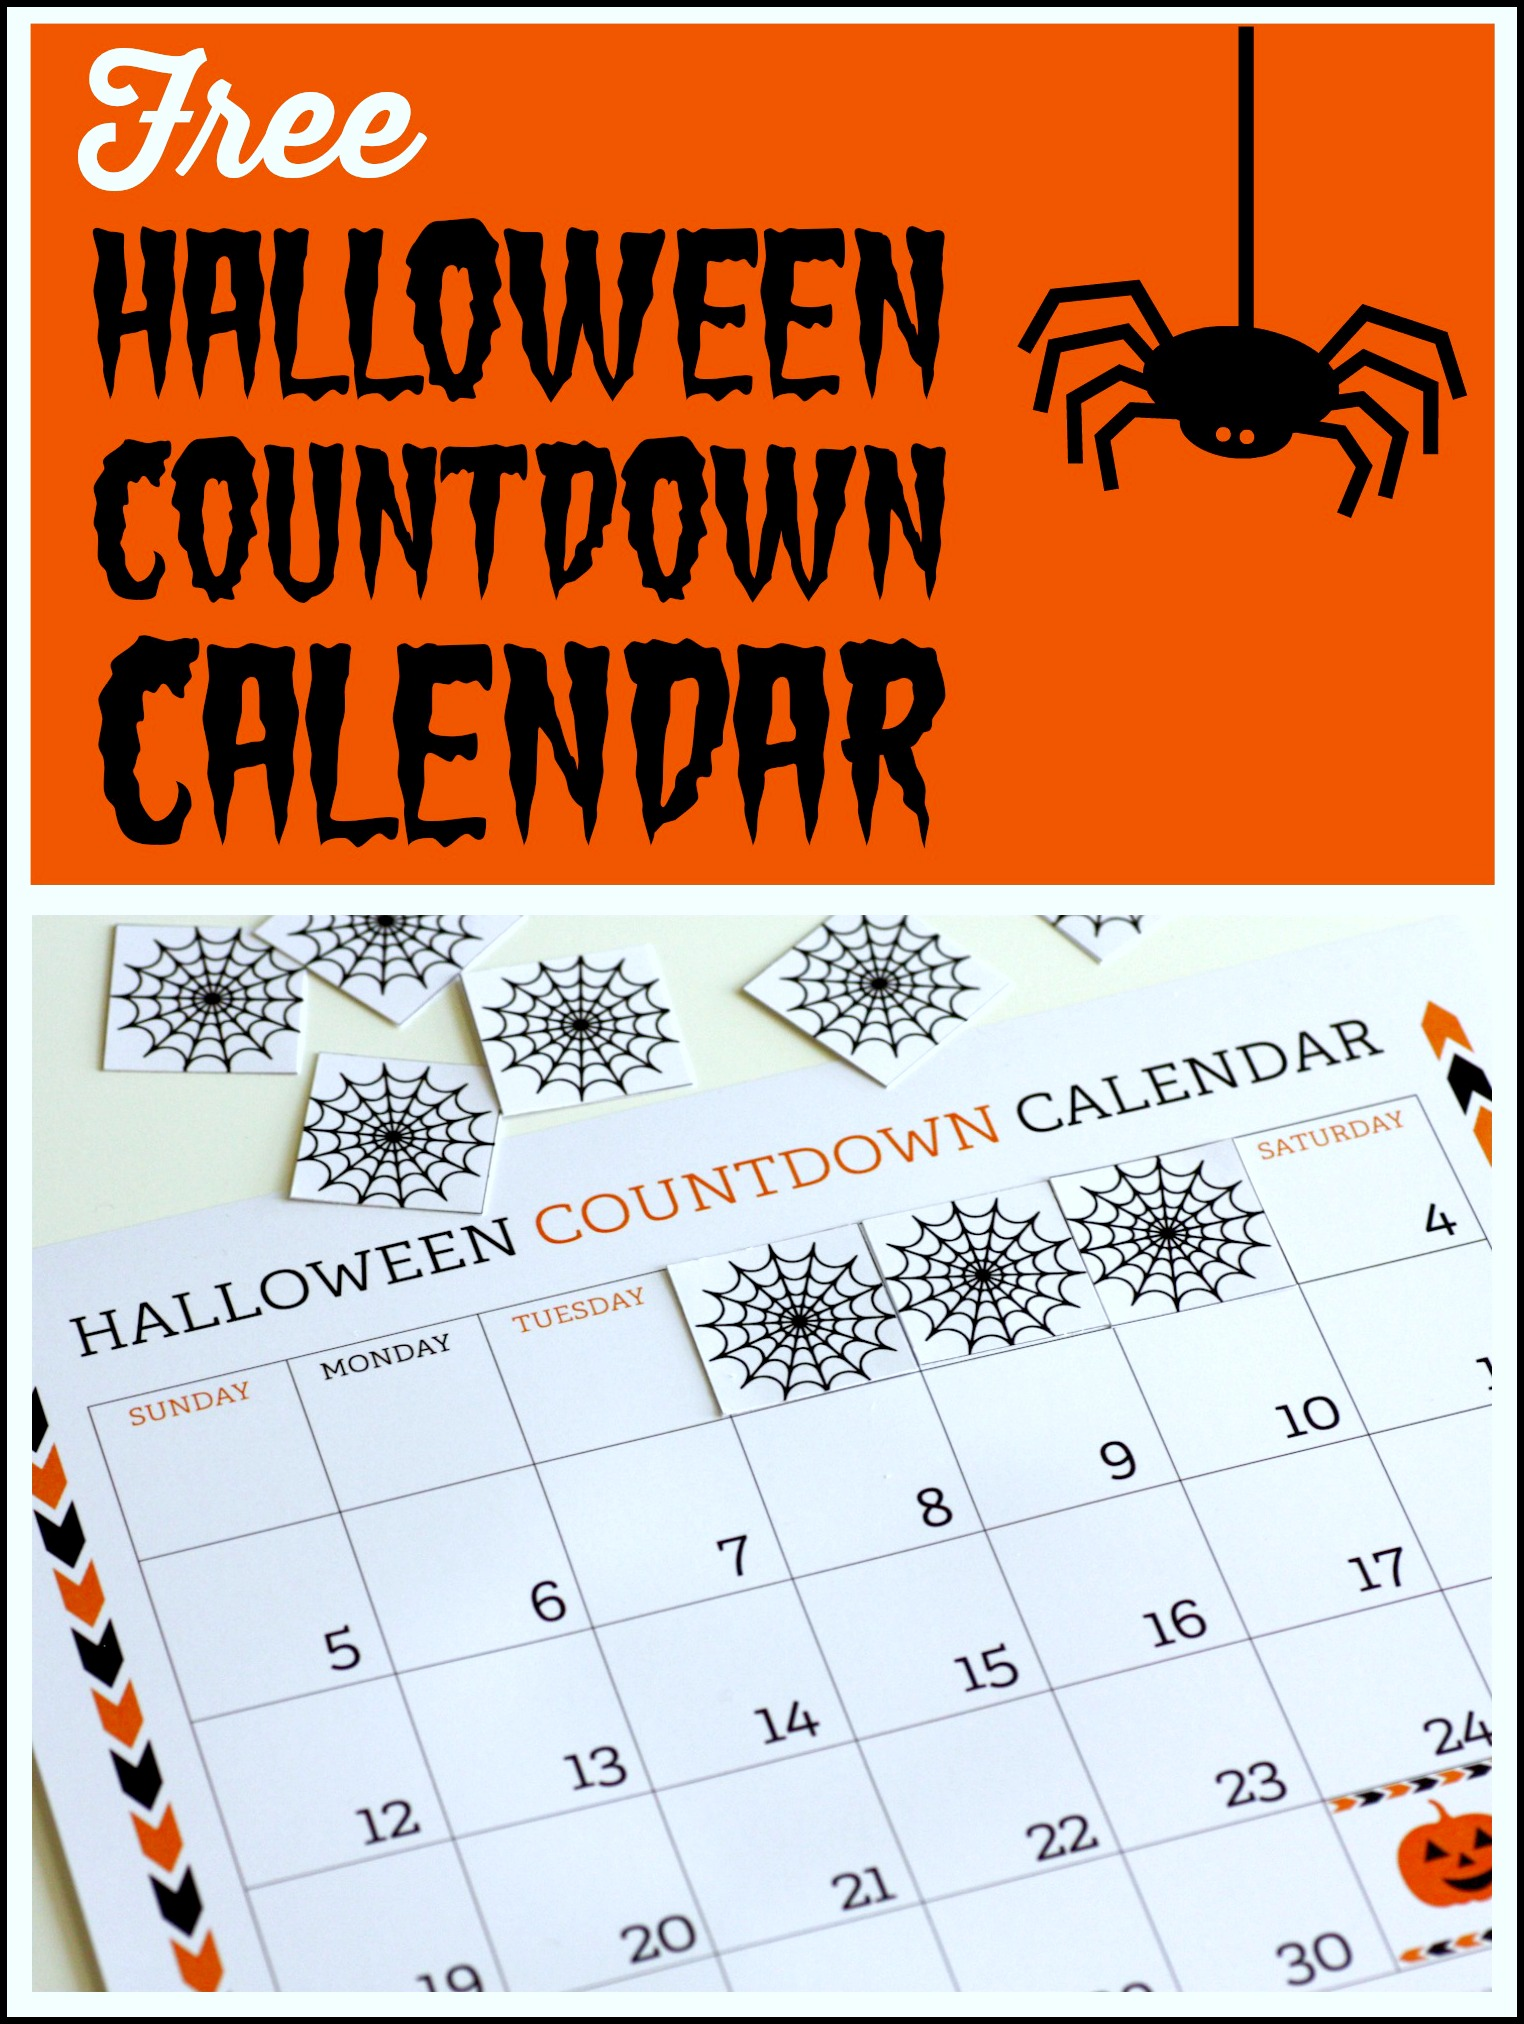 image about Countdown Calendar Printable named No cost Printable Halloween Countdown Calendar Capture My Celebration